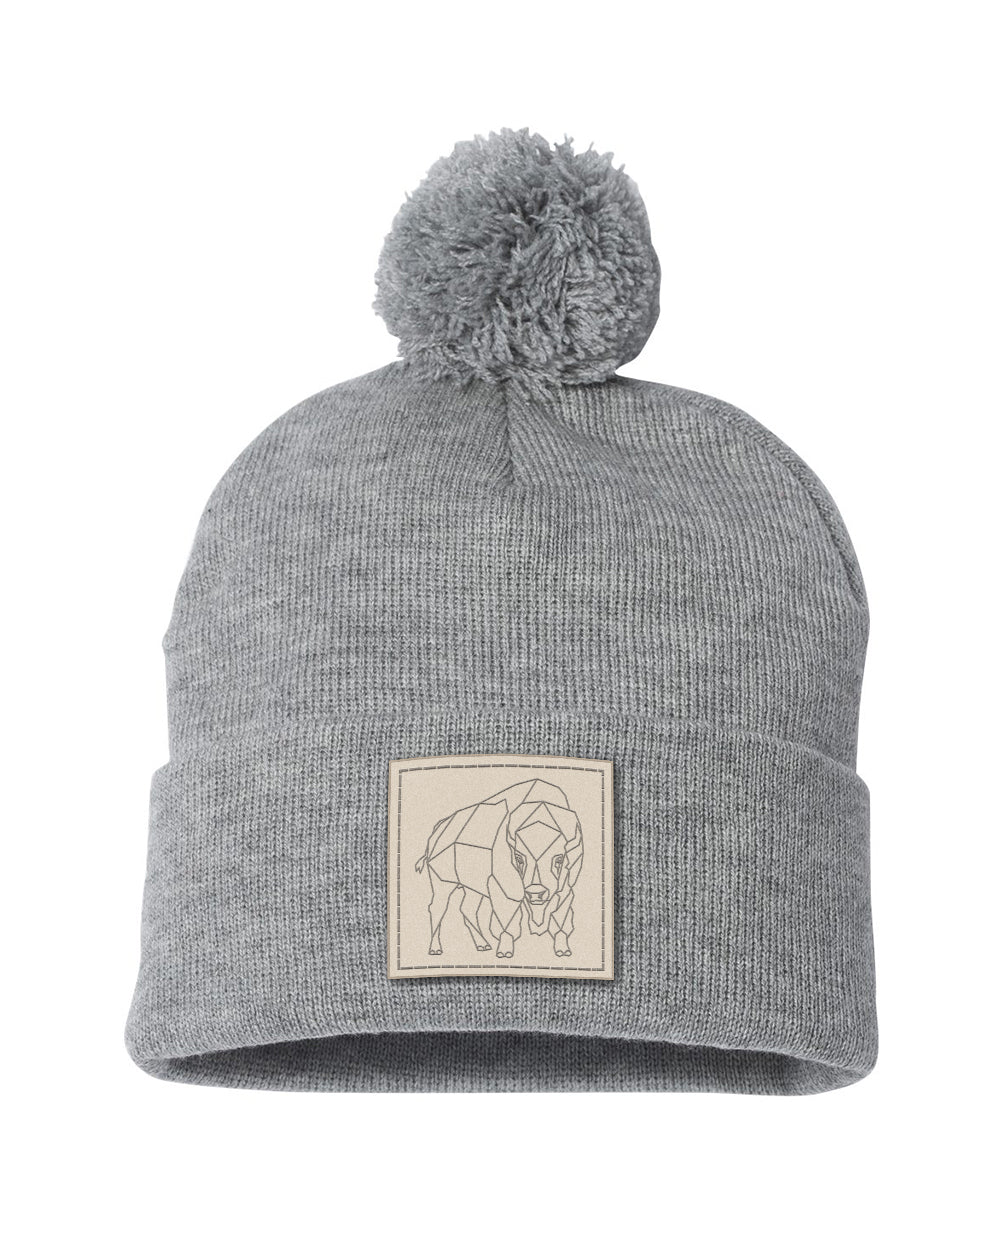 Bison Patch Pom Beanie - Heather Grey - Front